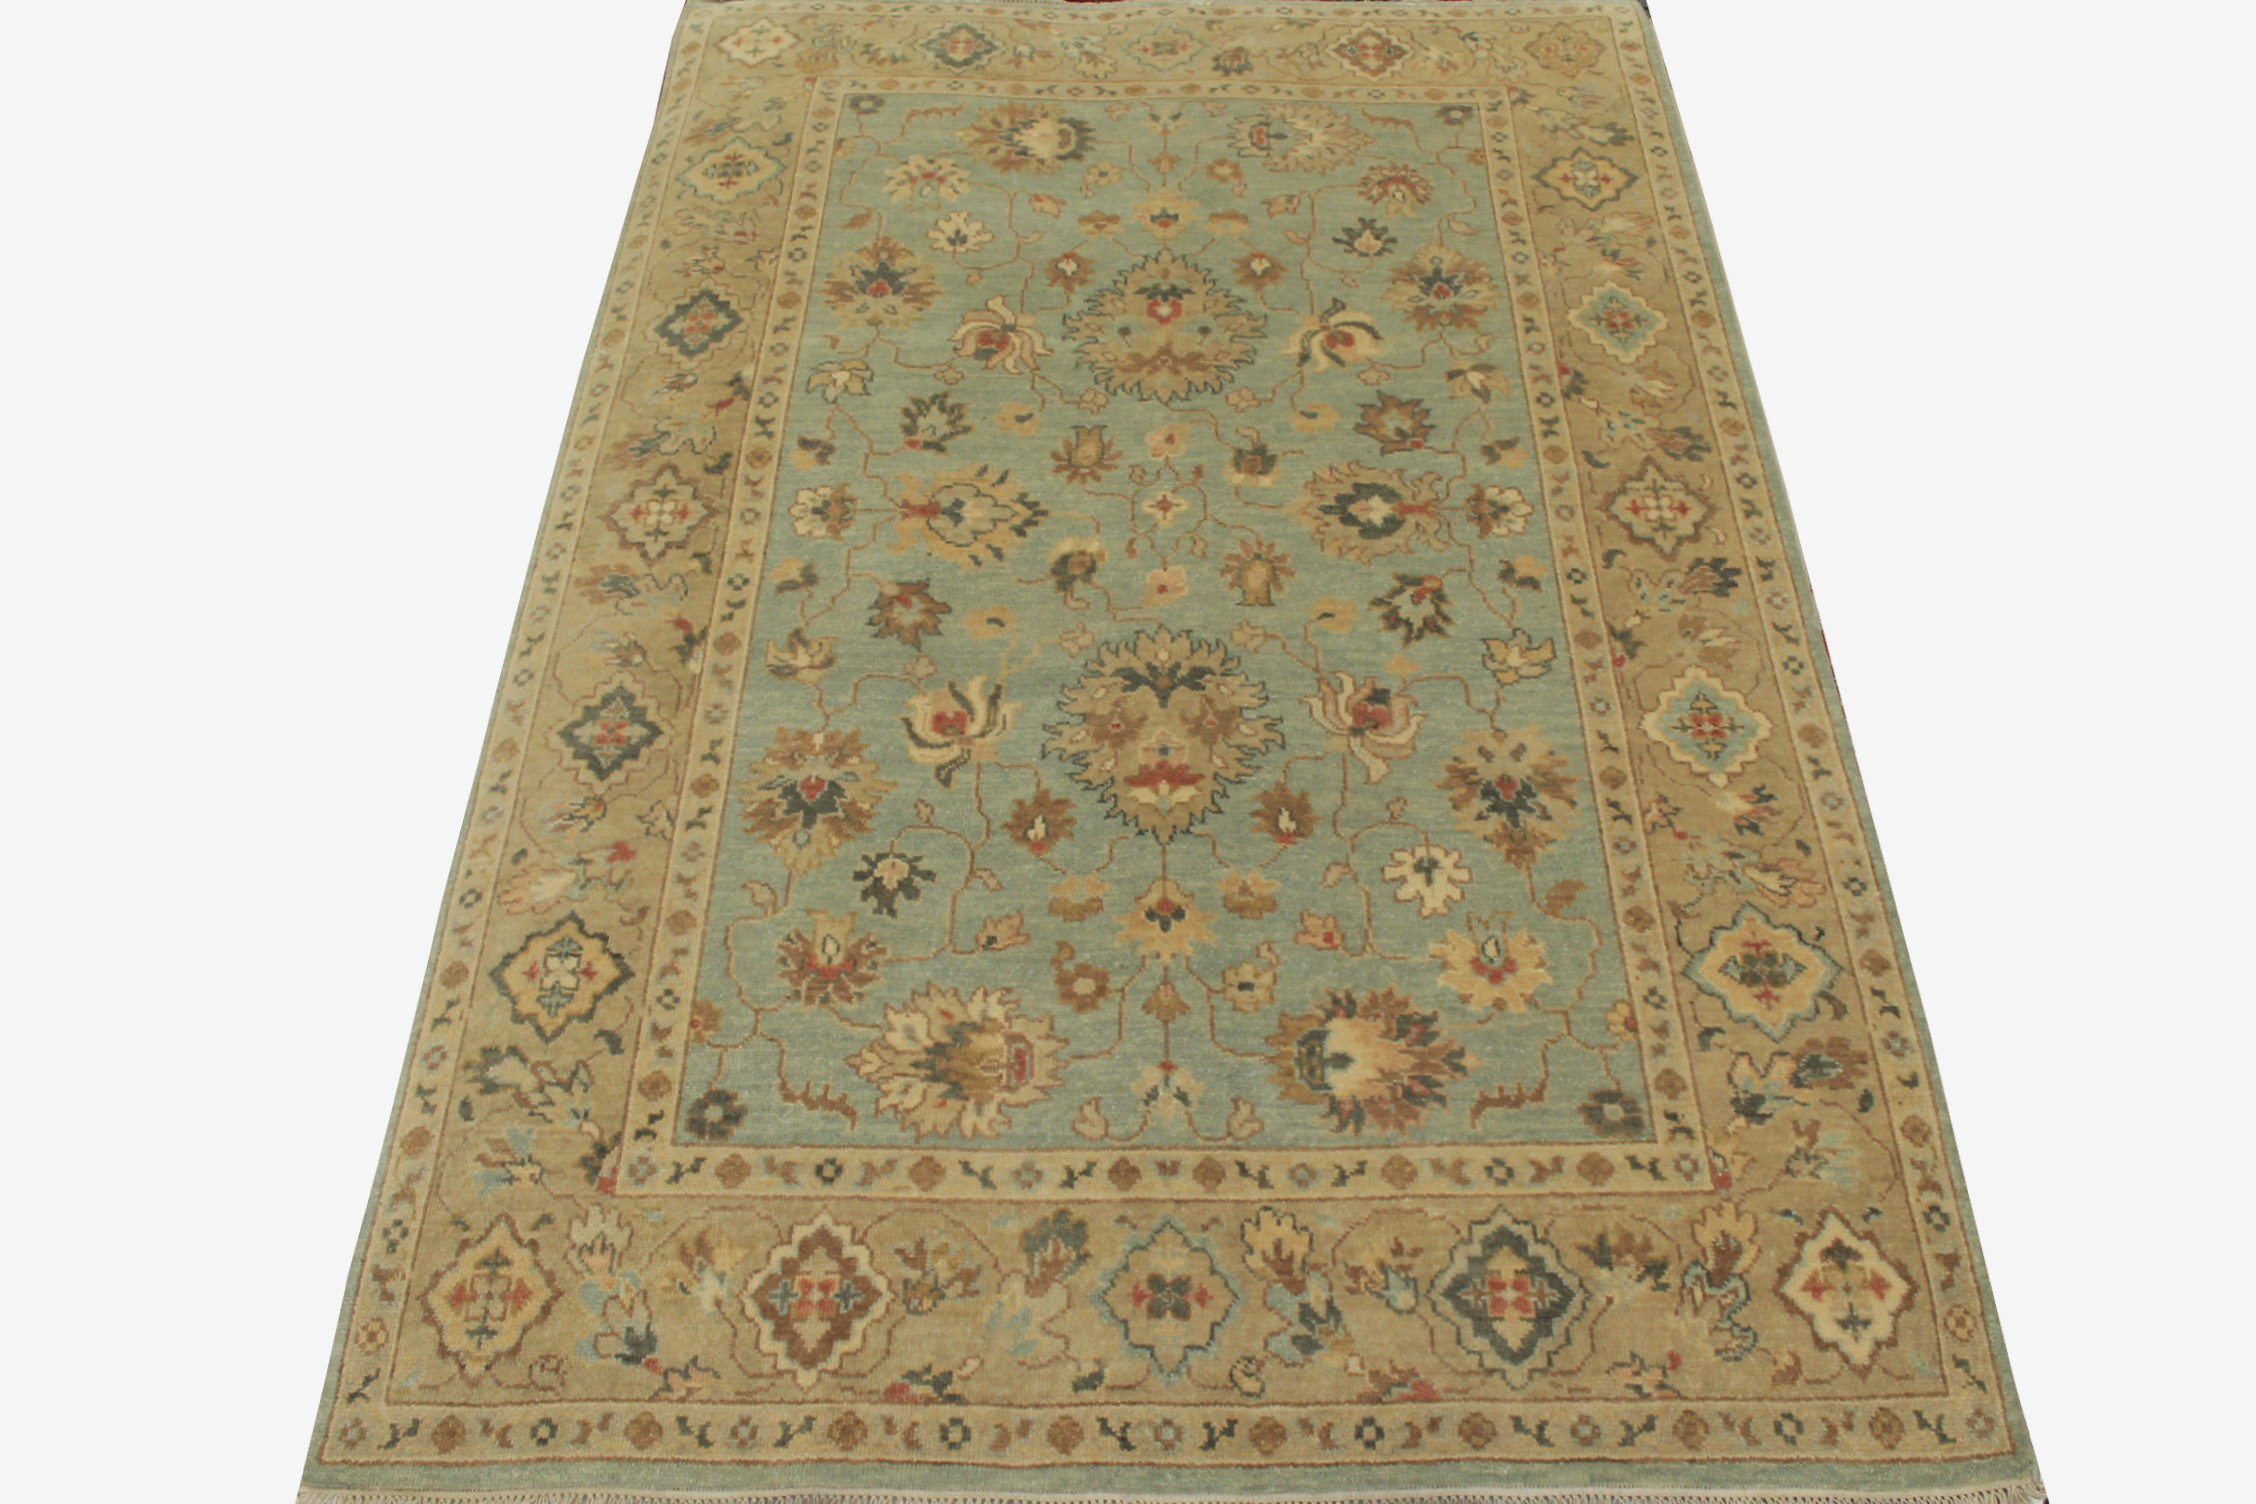 6x9 Traditional Hand Knotted Wool Area Rug - MR19917